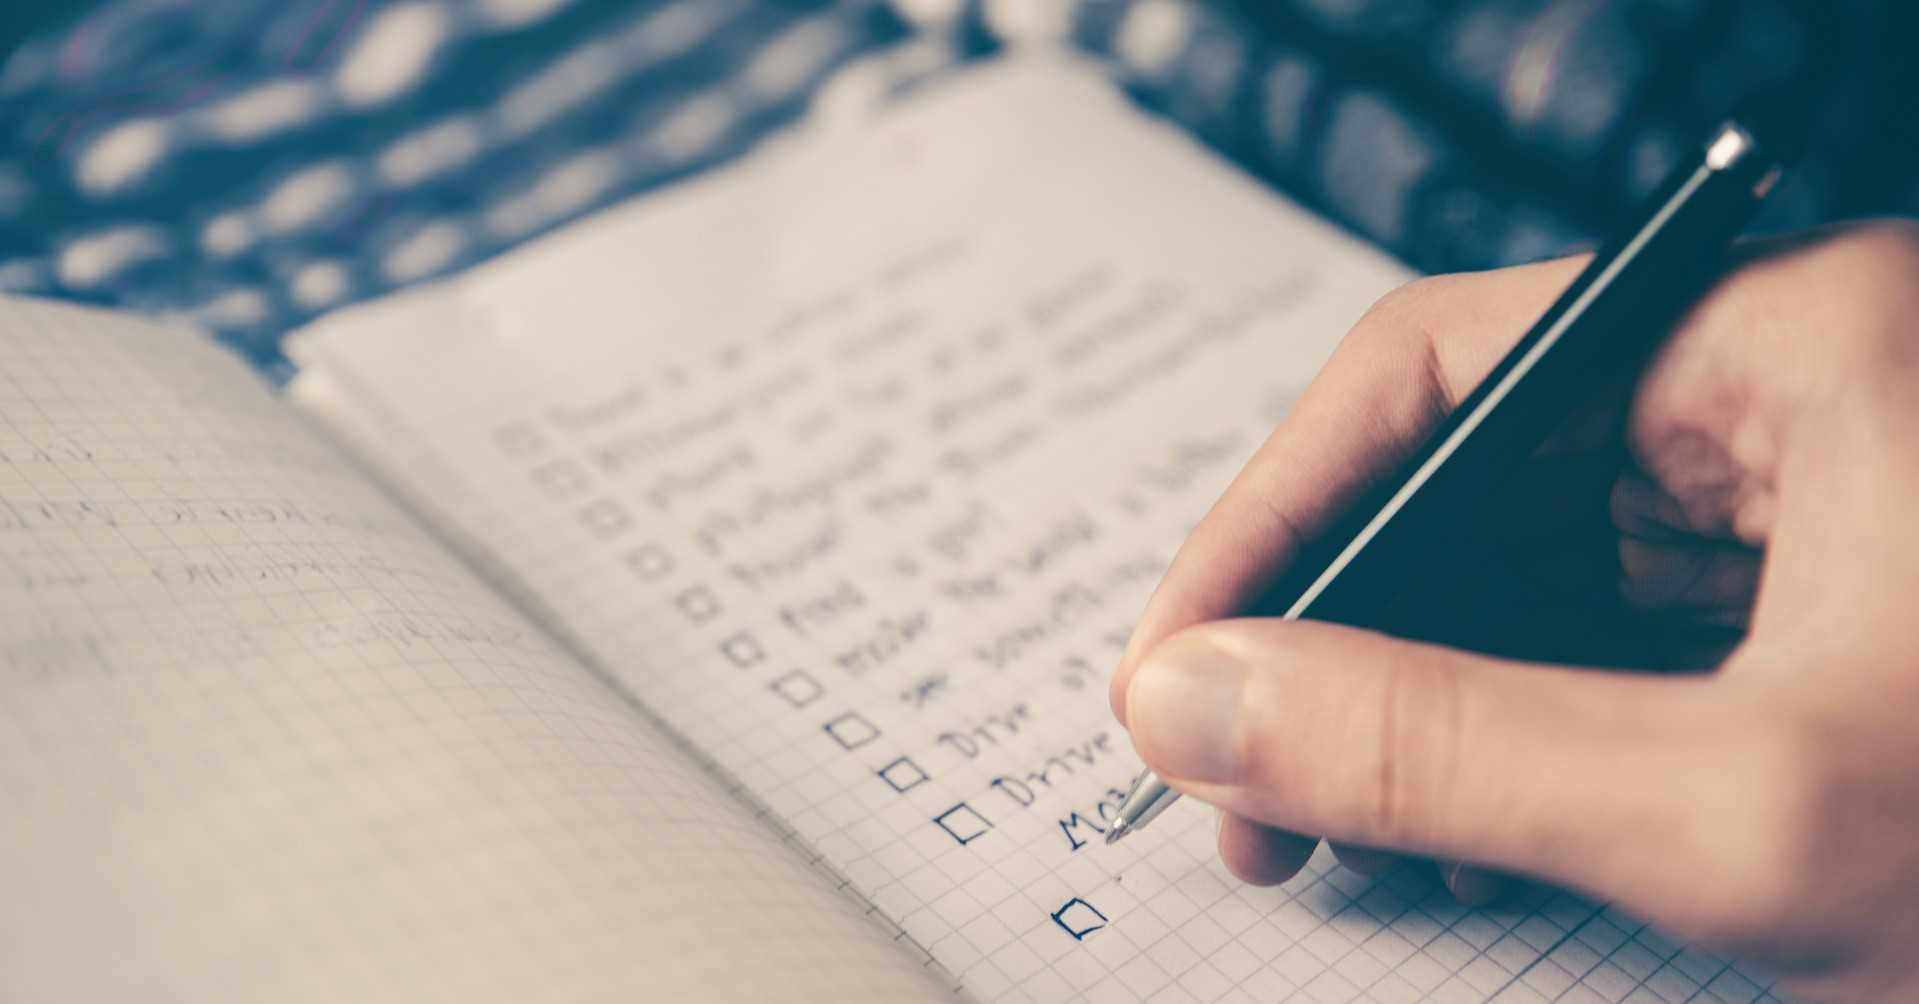 Determine action items to finalize preparation